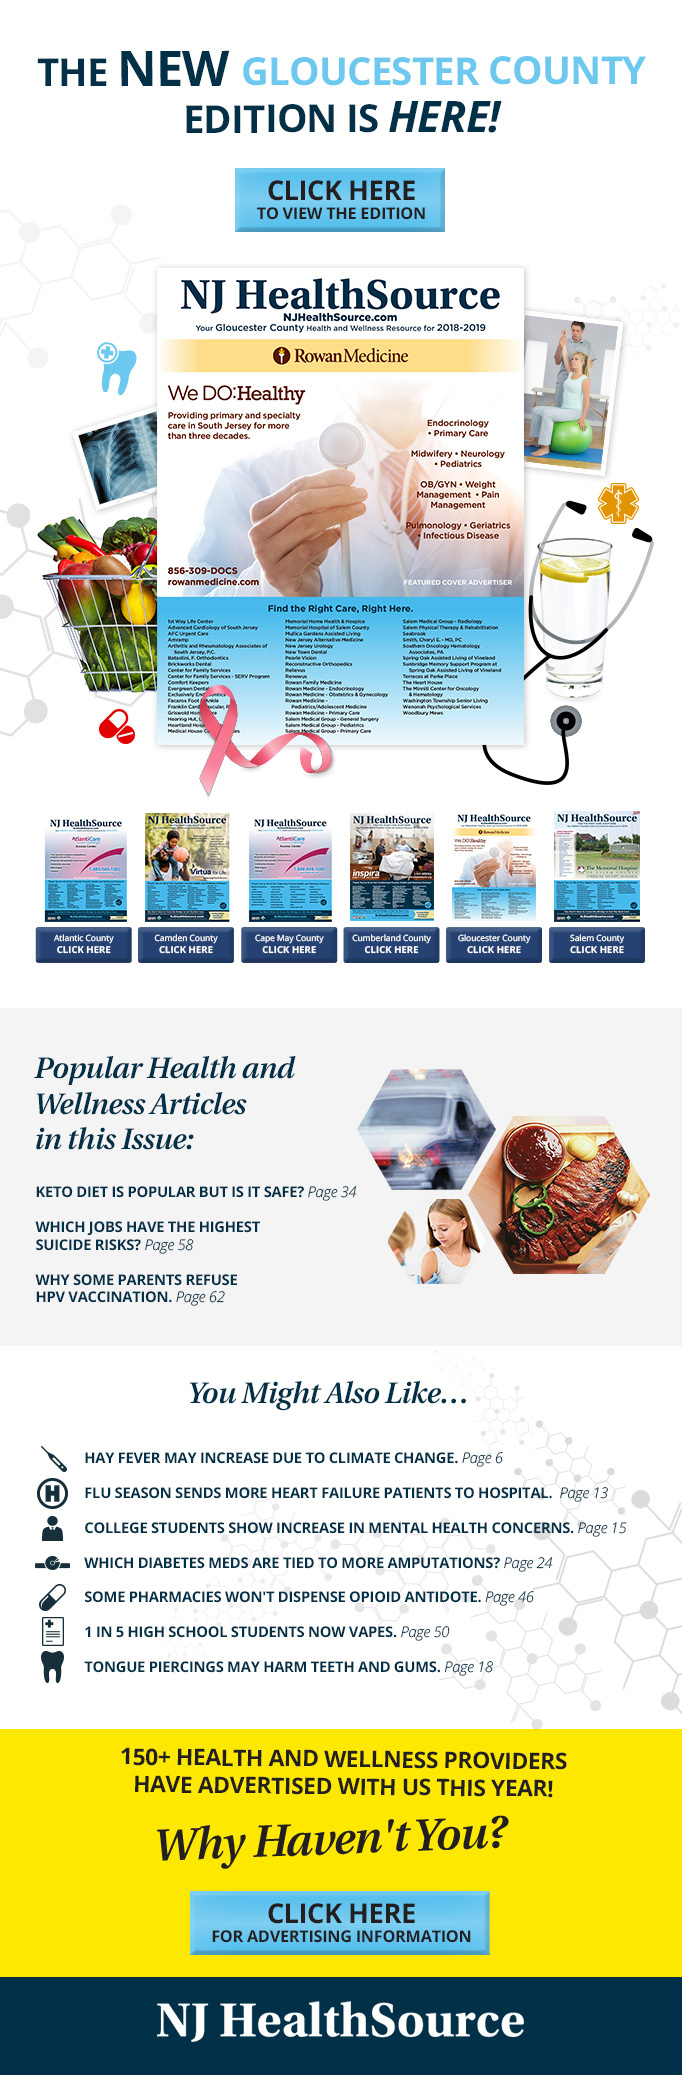 NJ HealthSource - GC 2018 Book Email Template Design